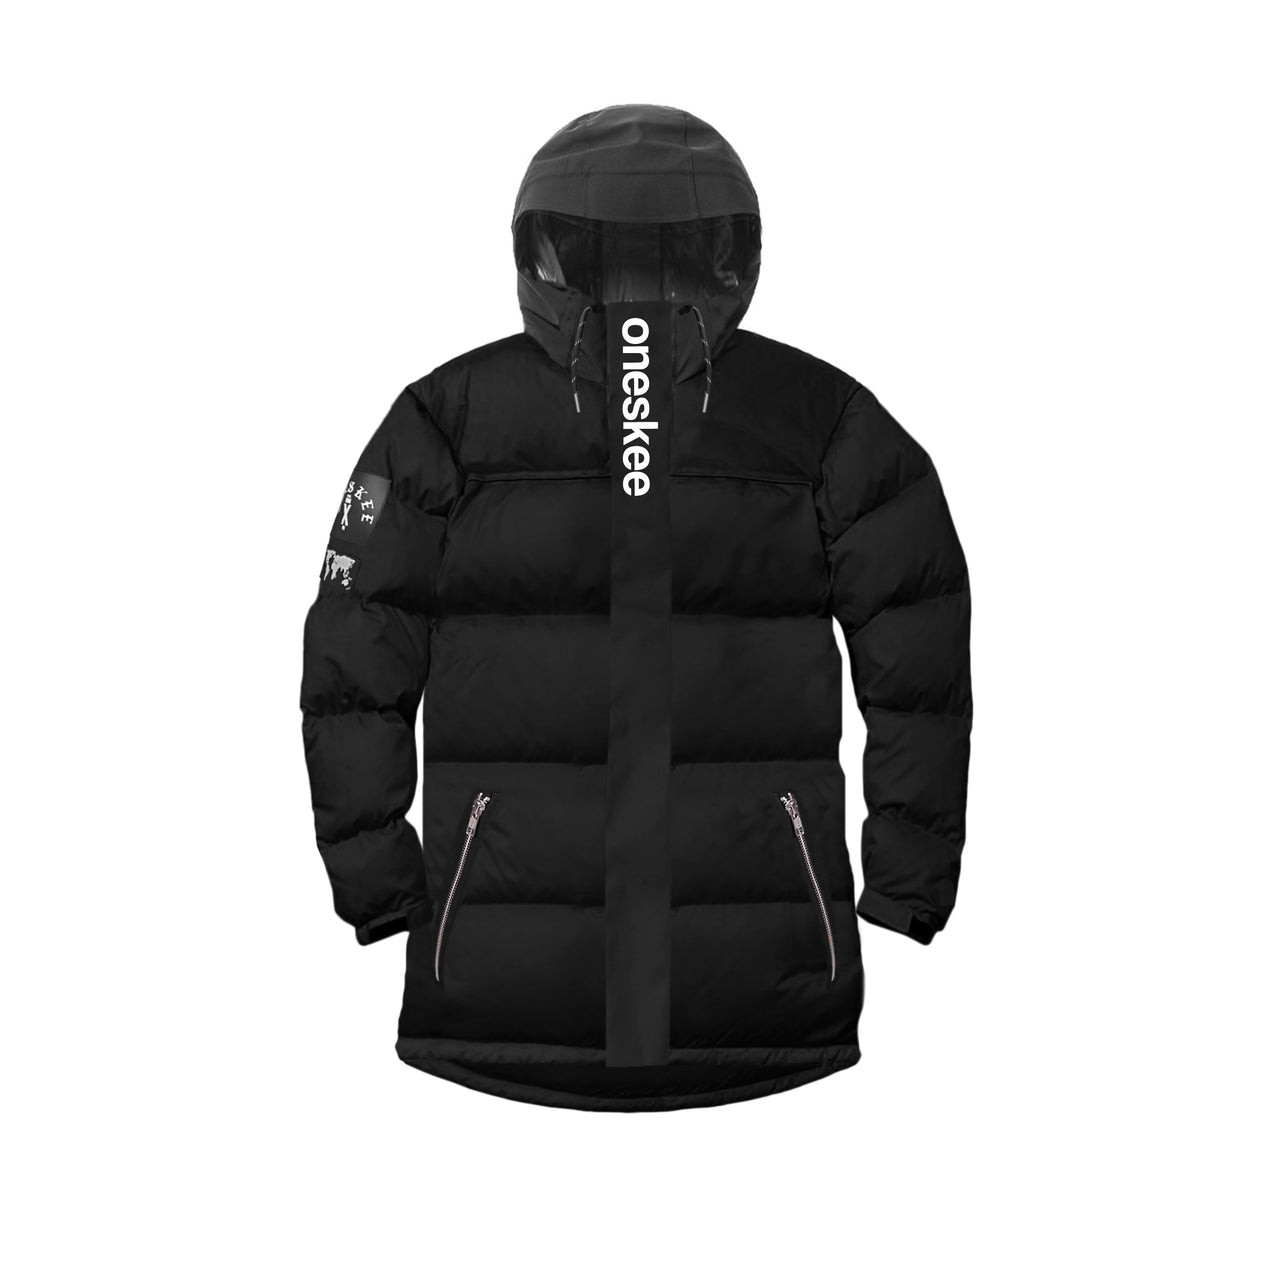 Technical Puffer Jacket - Black